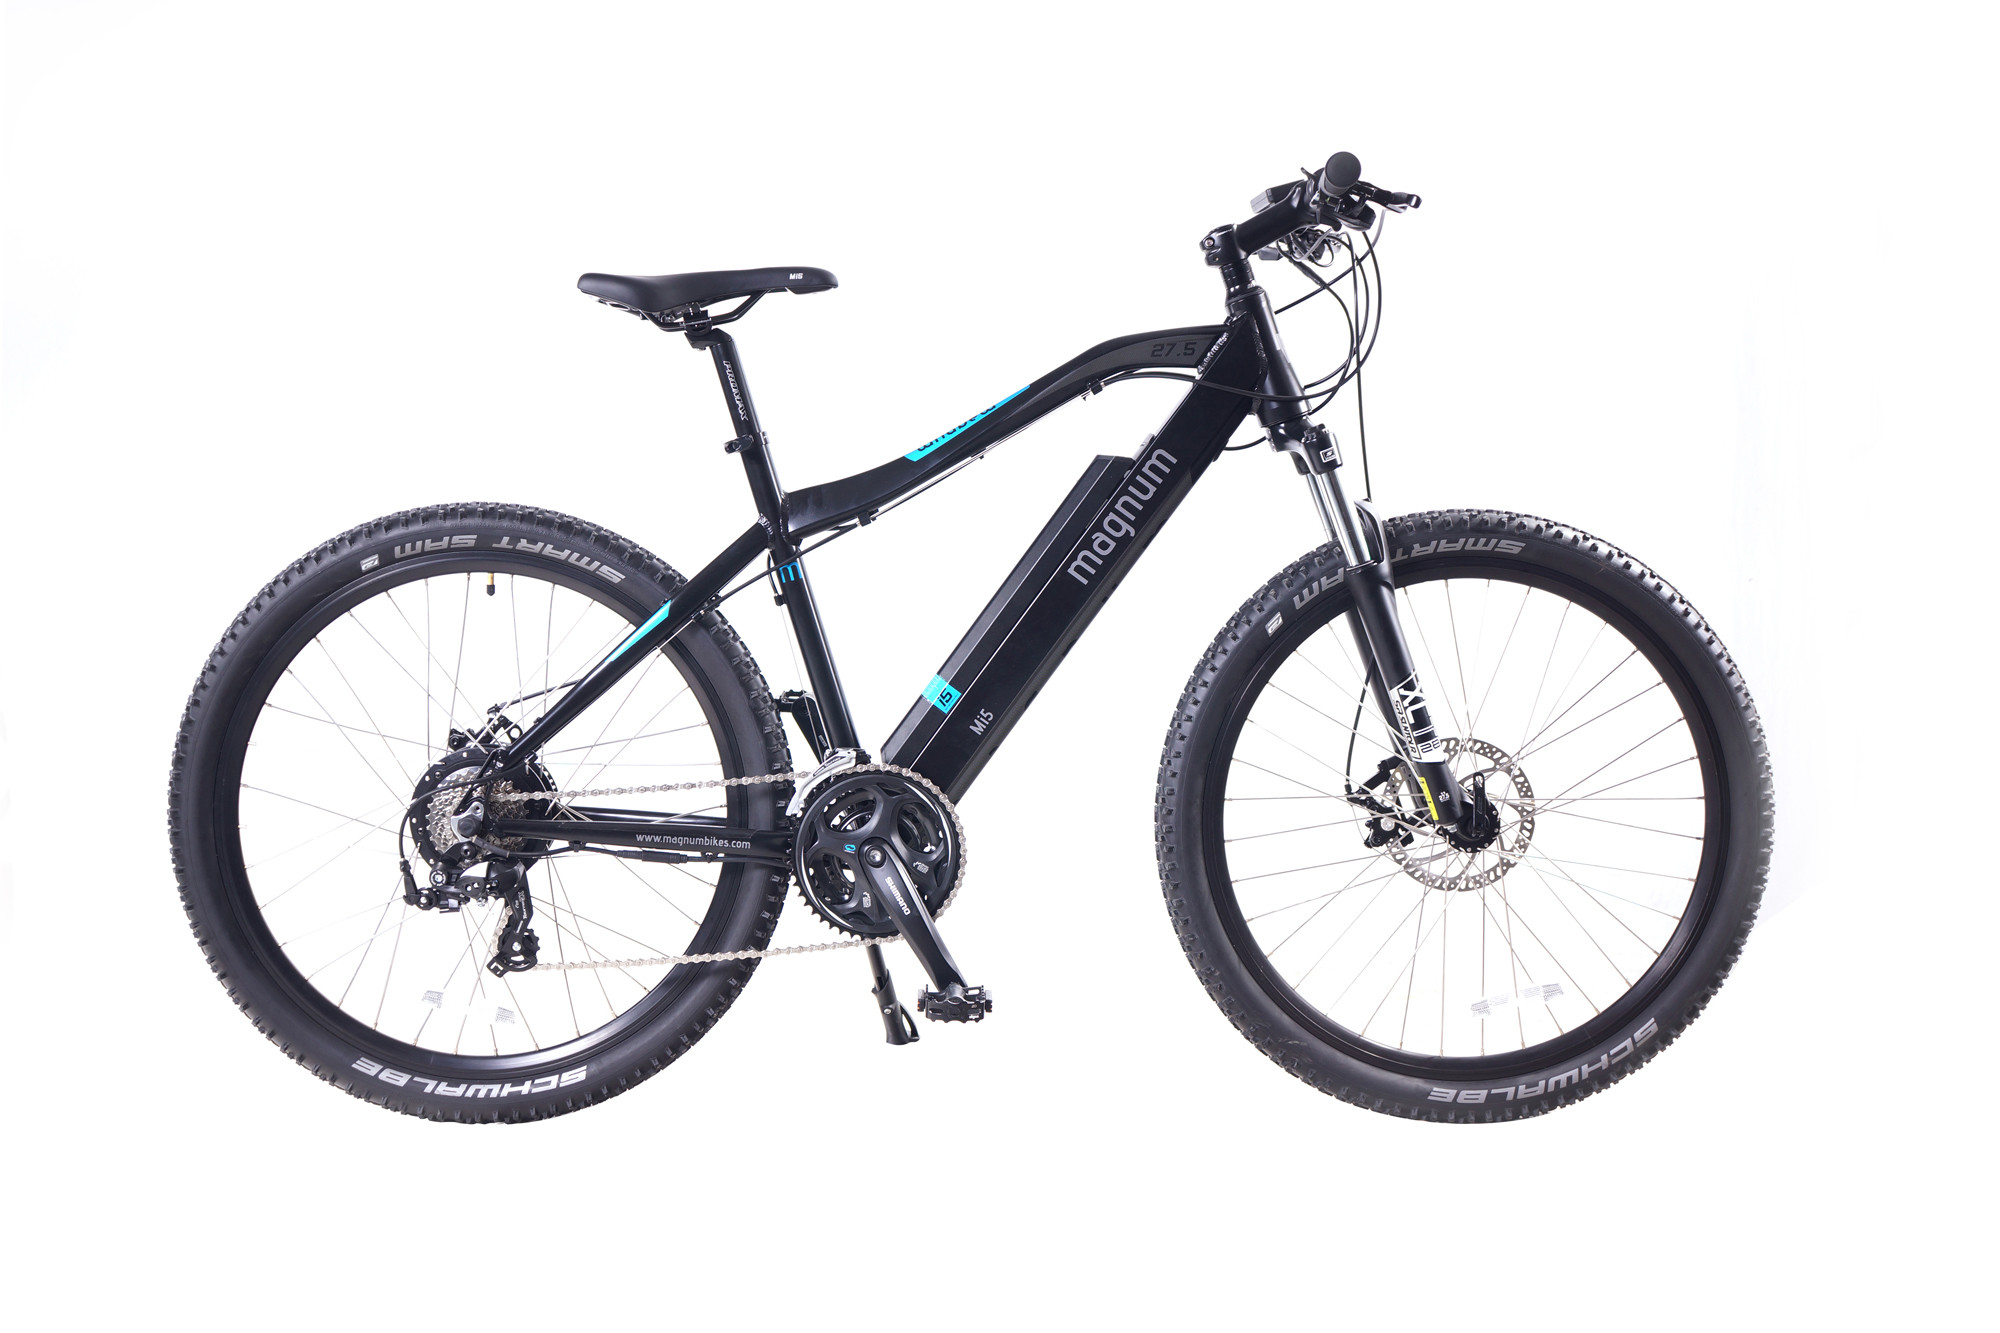 Magnum Models Electric Bikes | Available at www.leedelectricbikes.com